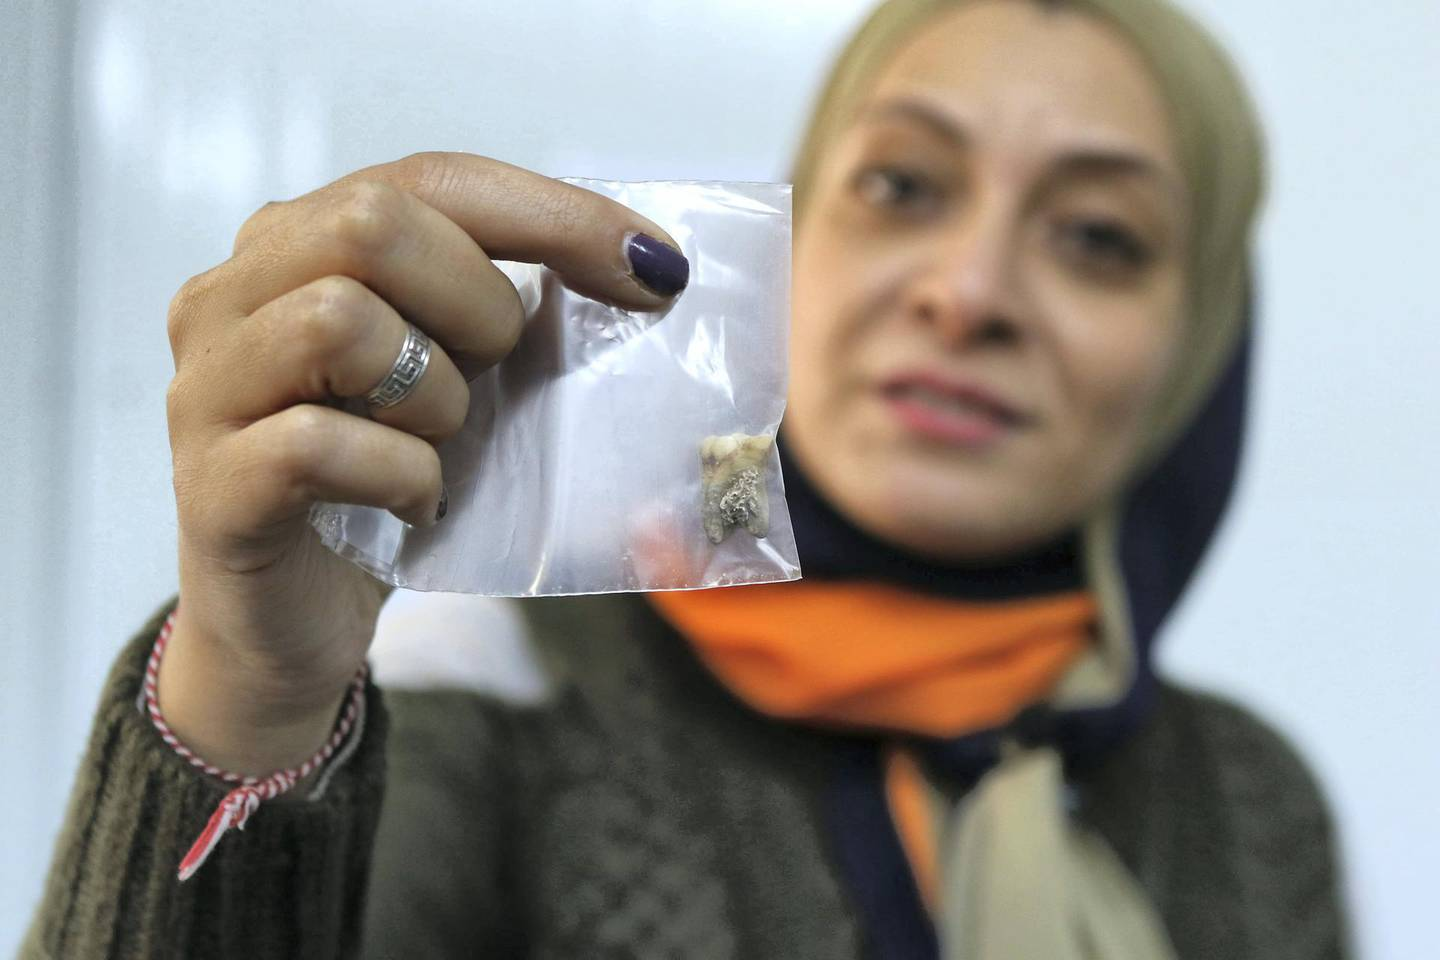 A Scientist displays a 2000 years-old teath which she is making researches on at the International Research Centre SESAME ( Synchrotron-light for Experimental Science and Applications in the Middle East) near Amman, Jordan. ( Salah Malkawi for The National)